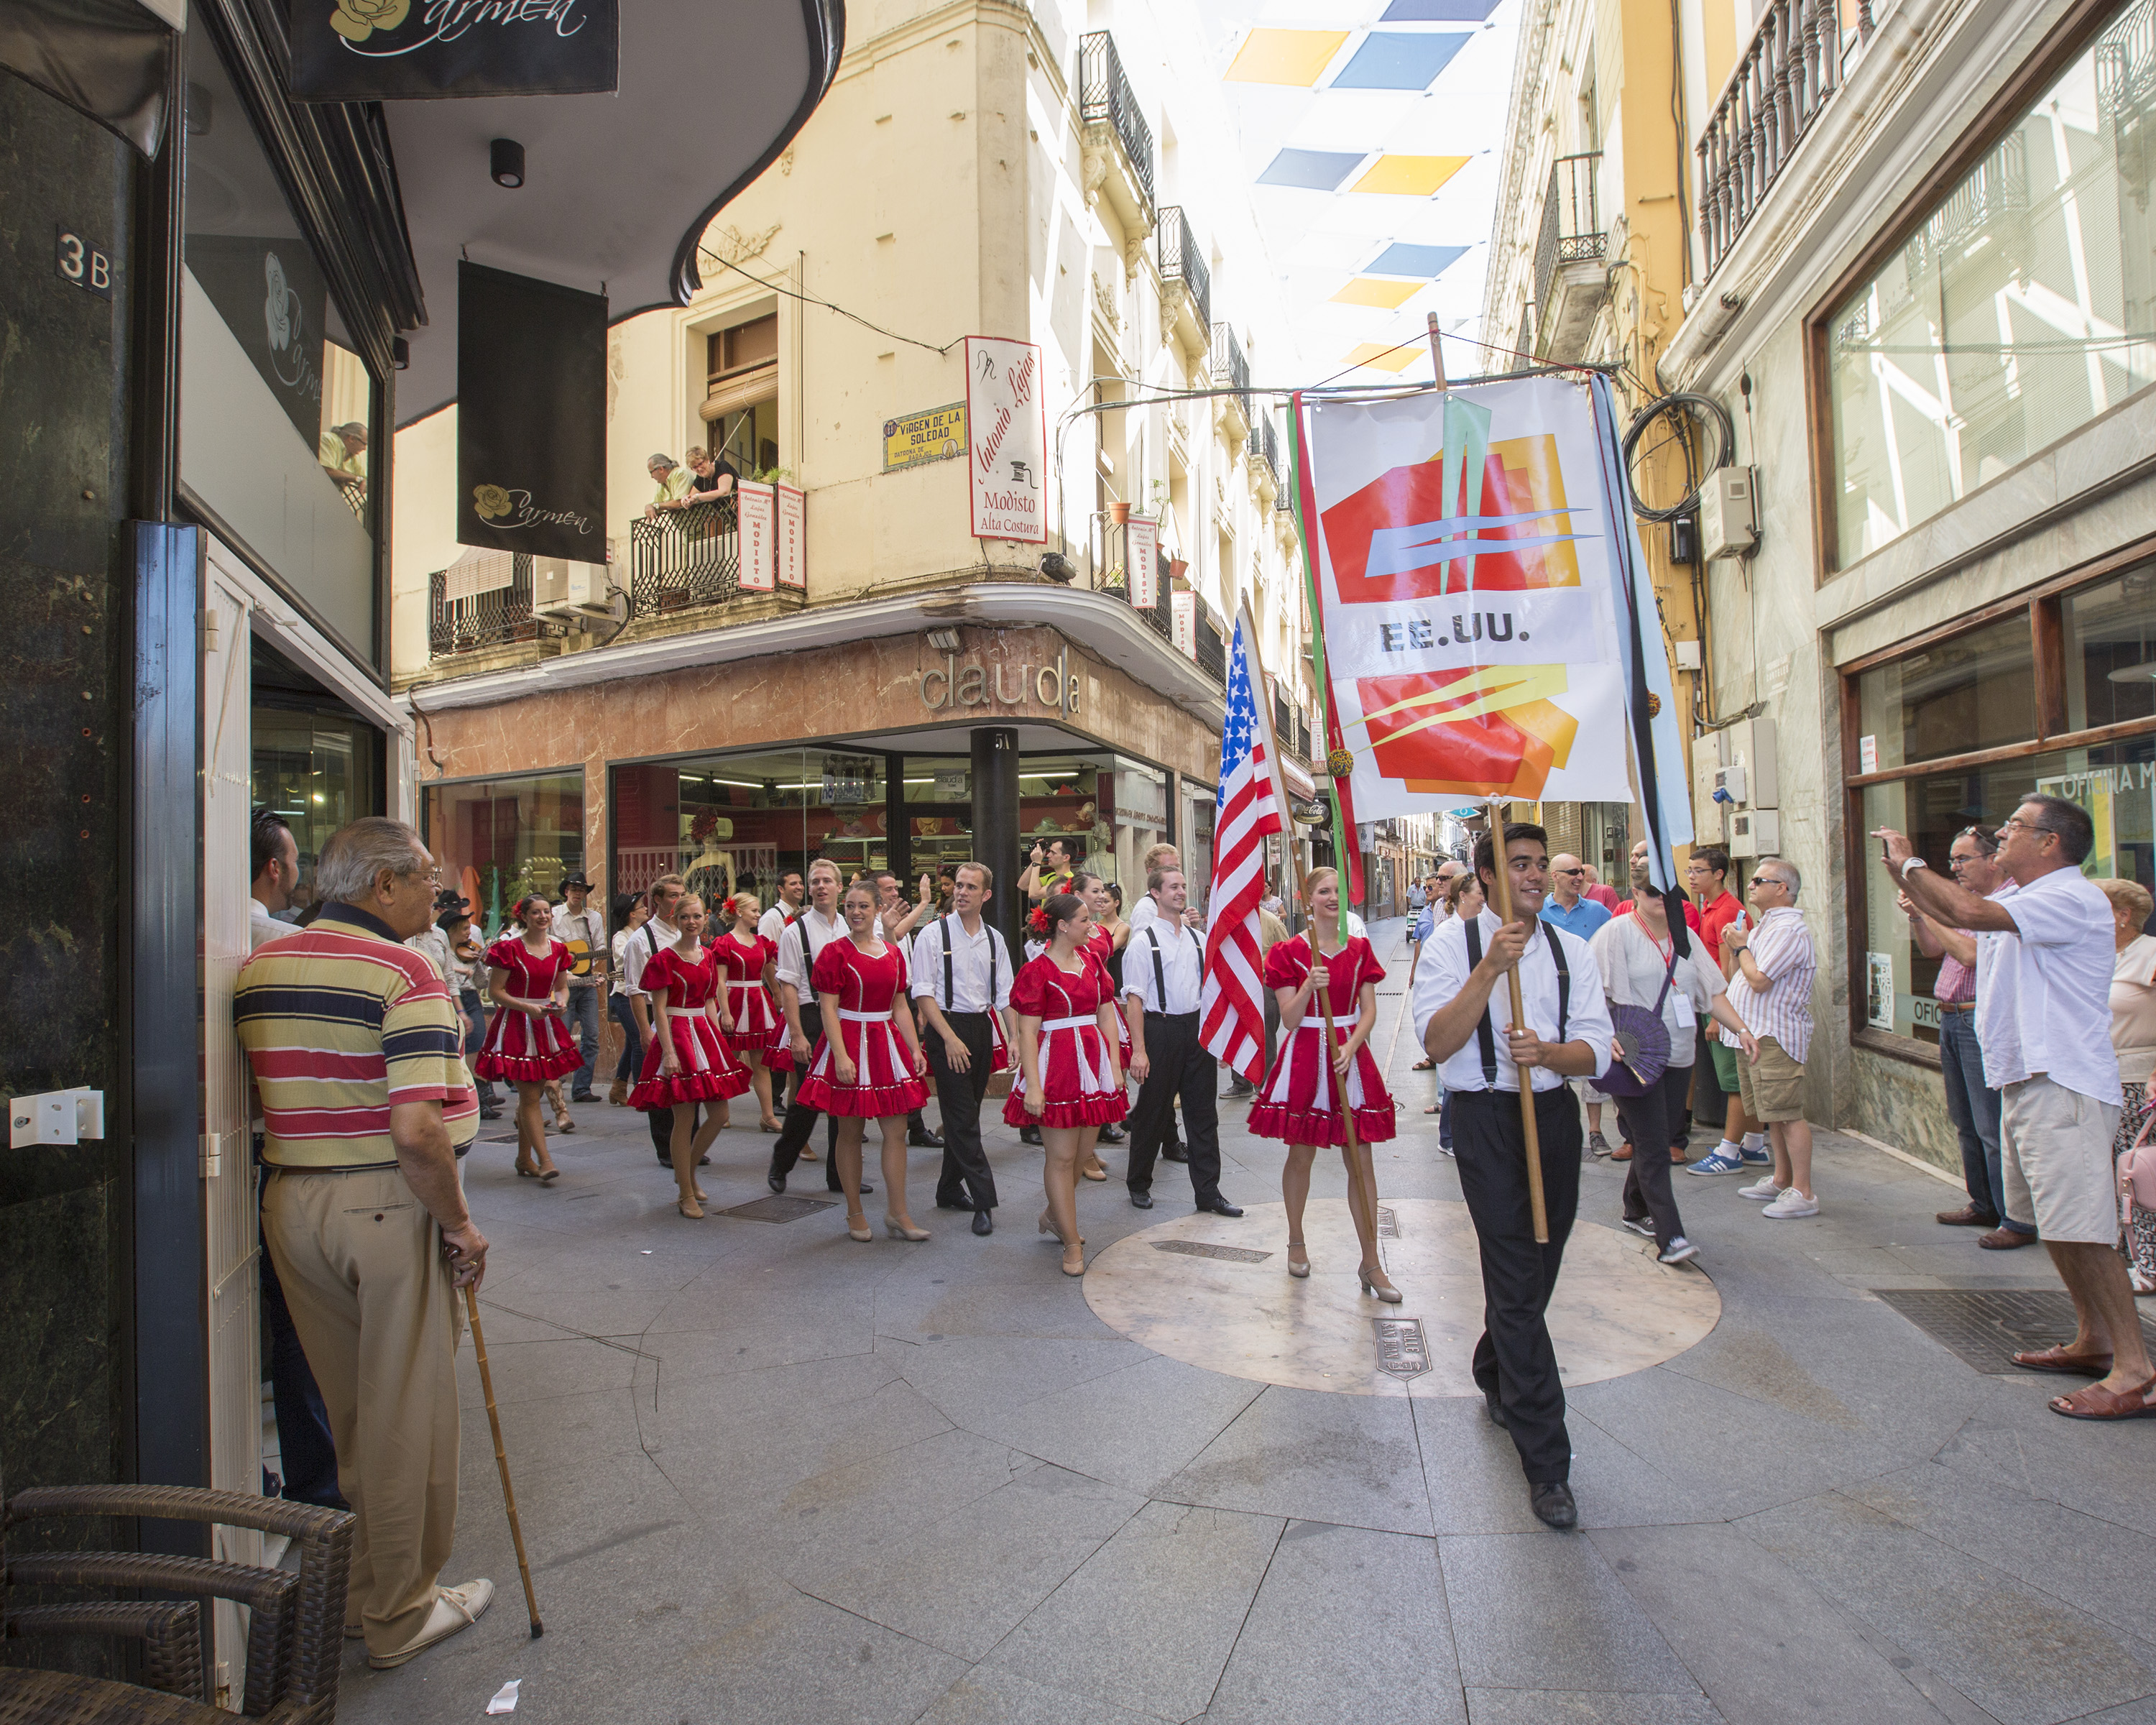 1507-77 4483  FKD Spain Tour Badajoz, Spain Extremadura Festival in Badajoz Parade  July 23, 2015  Photography by  Mark A. Philbrick/BYU  Copyright BYU Photo 2015 All Rights Reserved photo@byu.edu (801)422-7322  7965